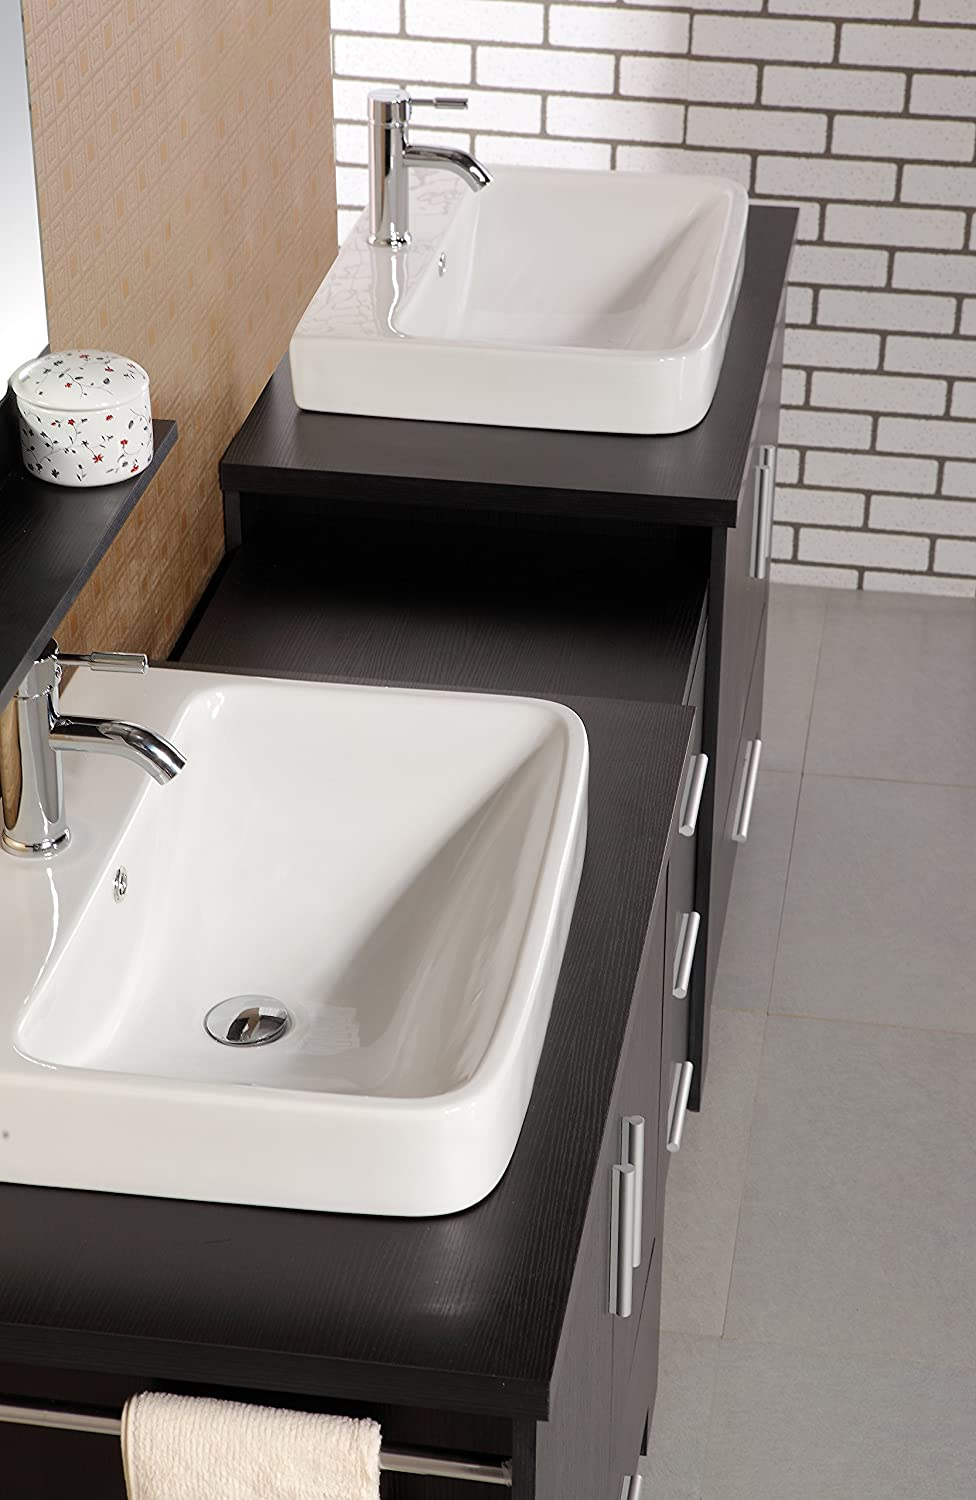 Design Element Washington Double Drop-In Vessel Sink Vanity Set ...